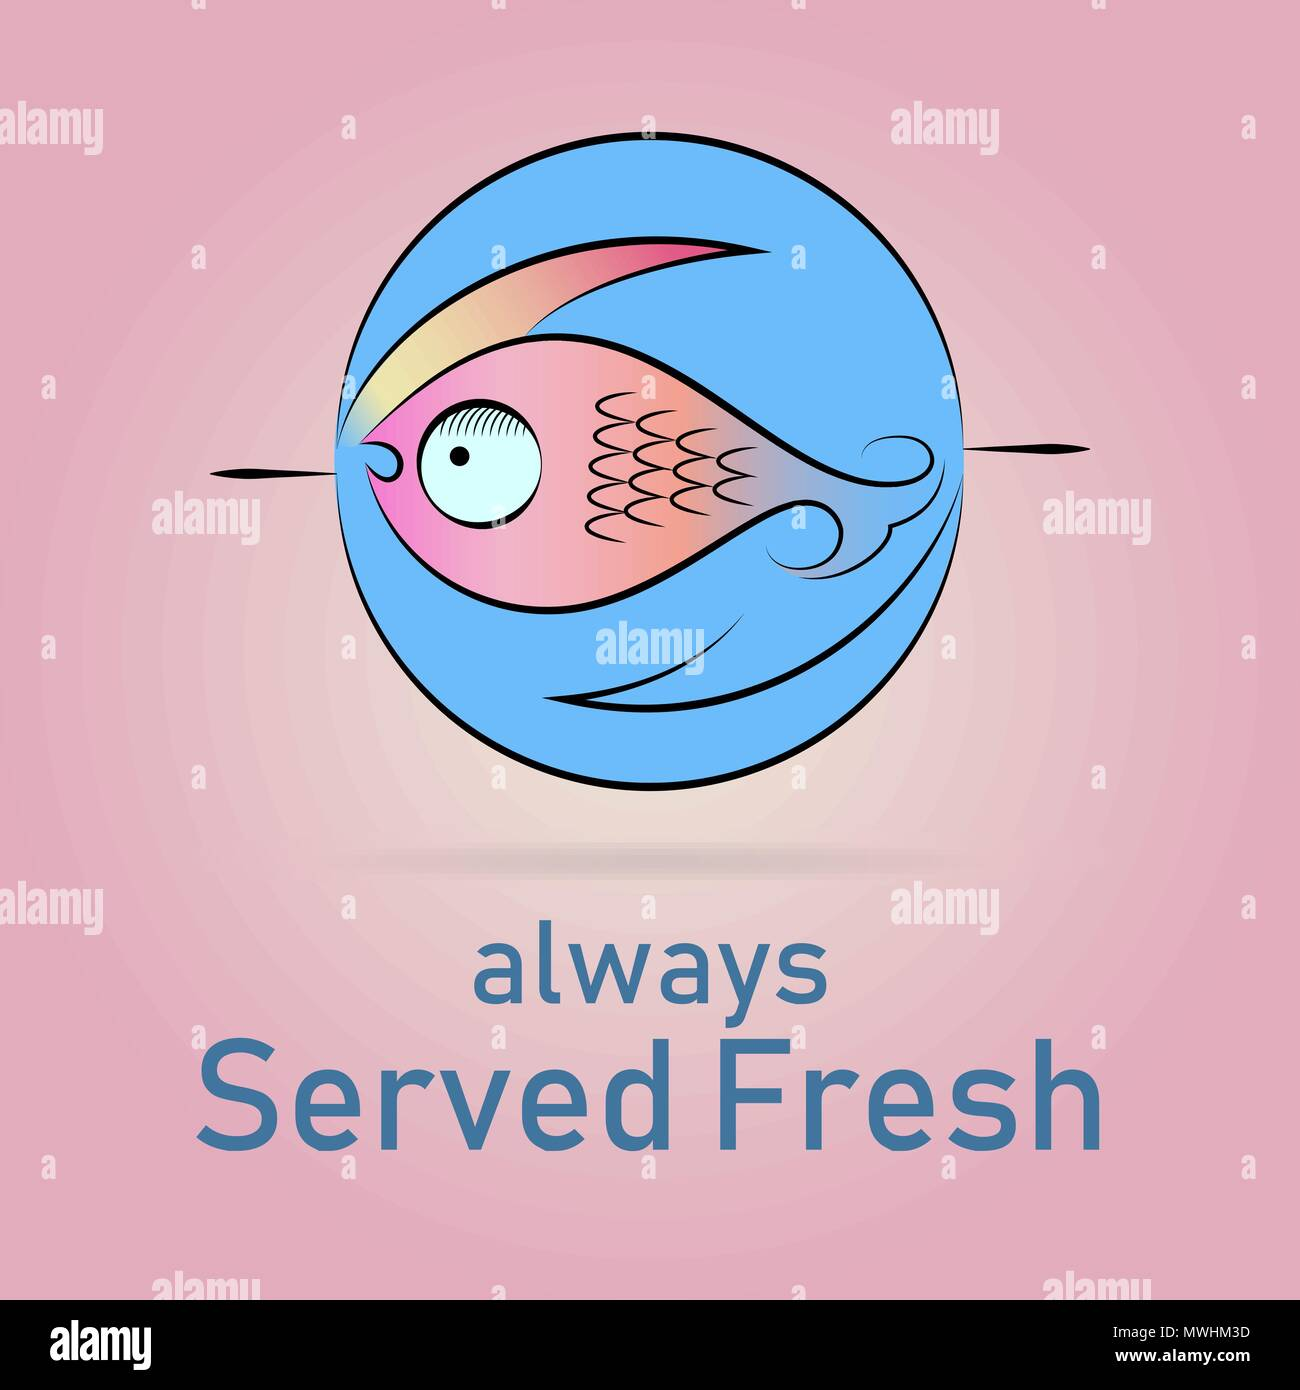 Fish Logo For Seafood Restaurants And Fishing Related